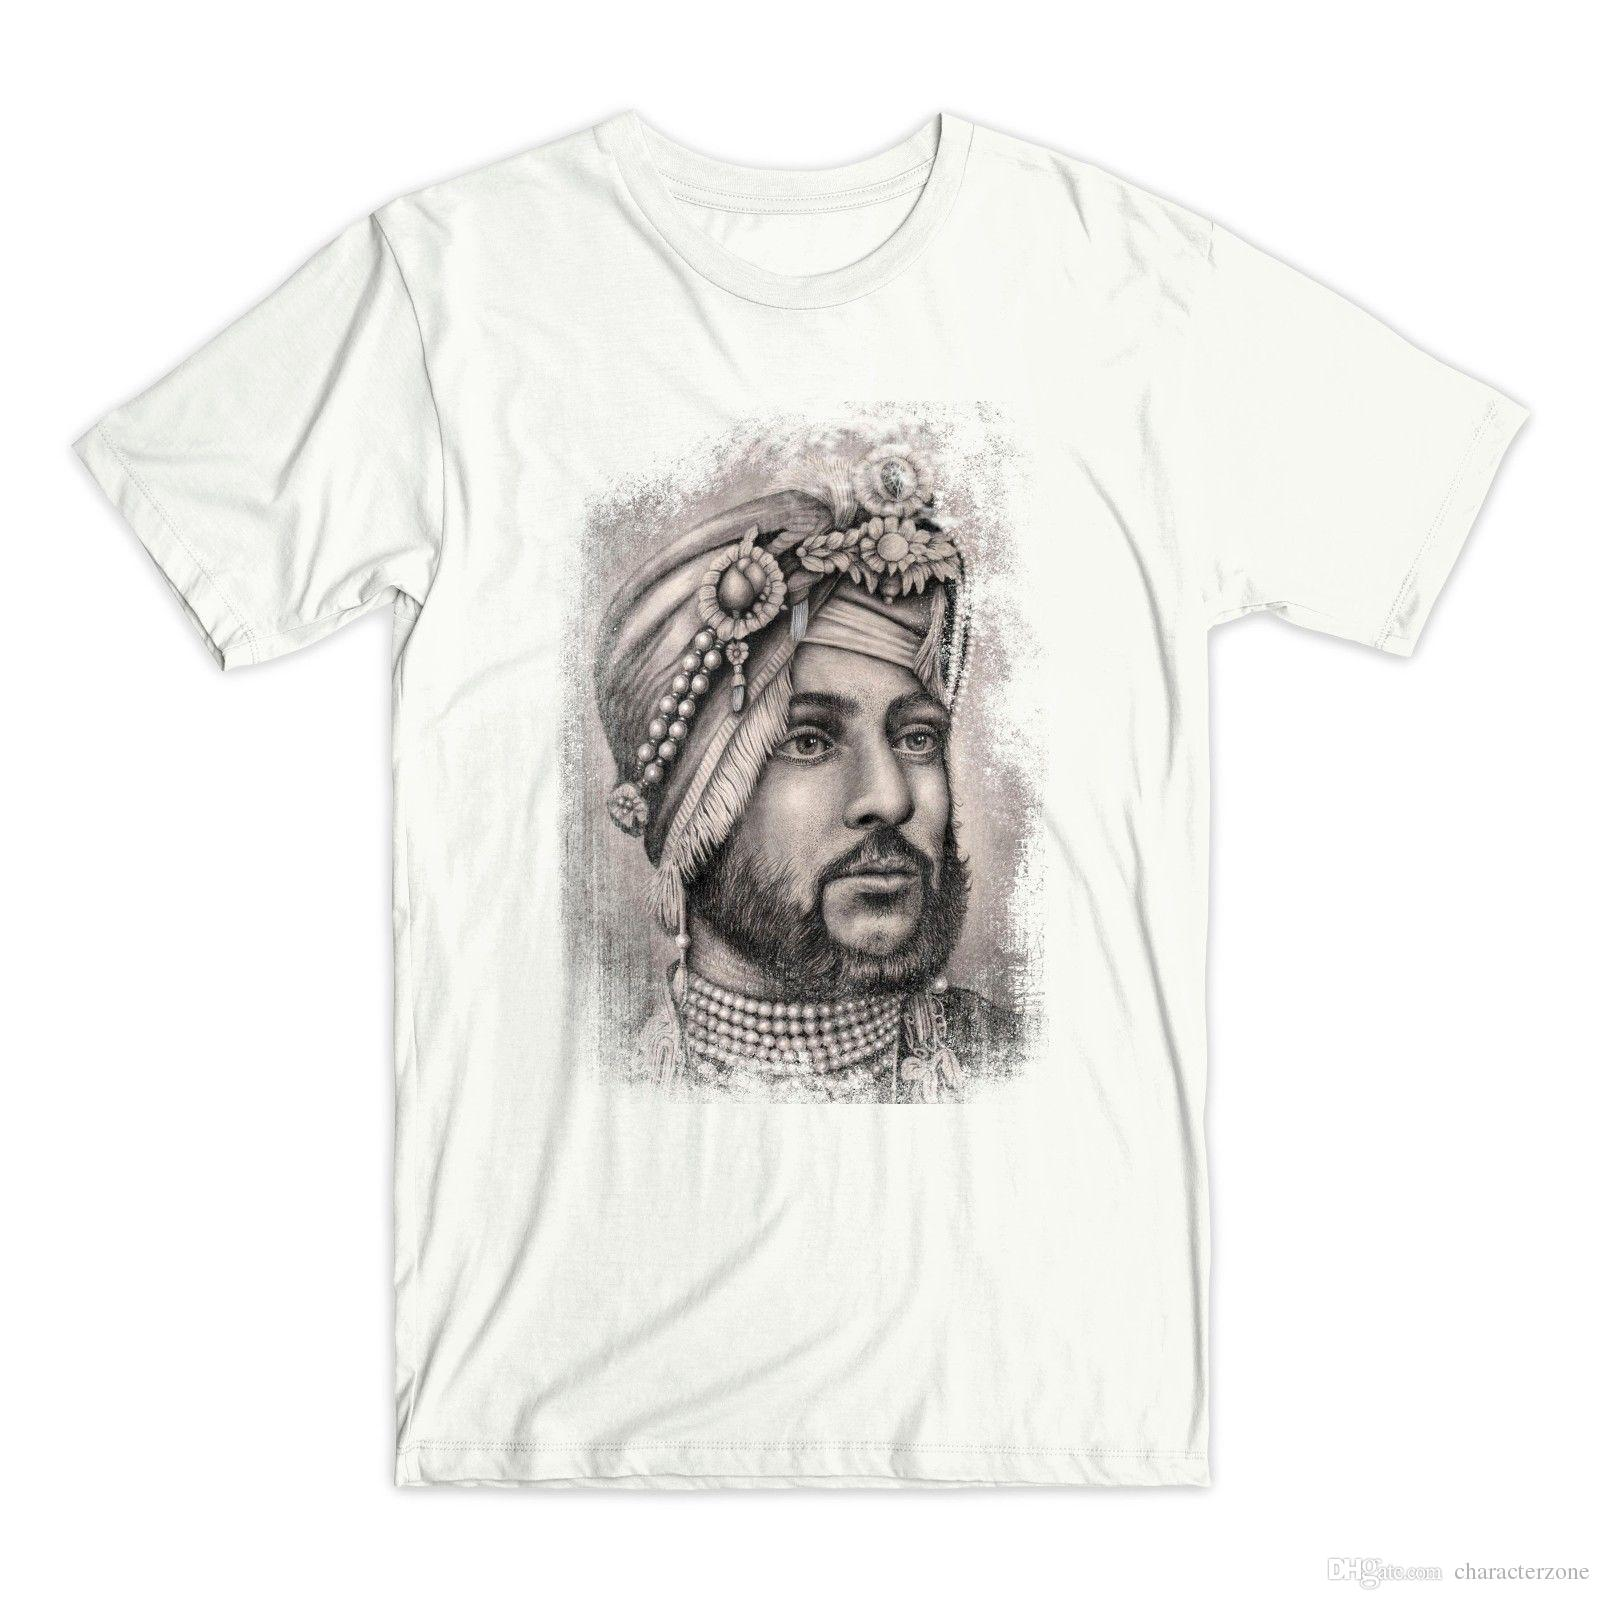 a9afd876 Maharaja Duleep Singh T Shirt Sikh Empire Indian Punjab Cool Tee Shirt  Designs Buy Cool T Shirts Online From Characterzone, $10.5| DHgate.Com